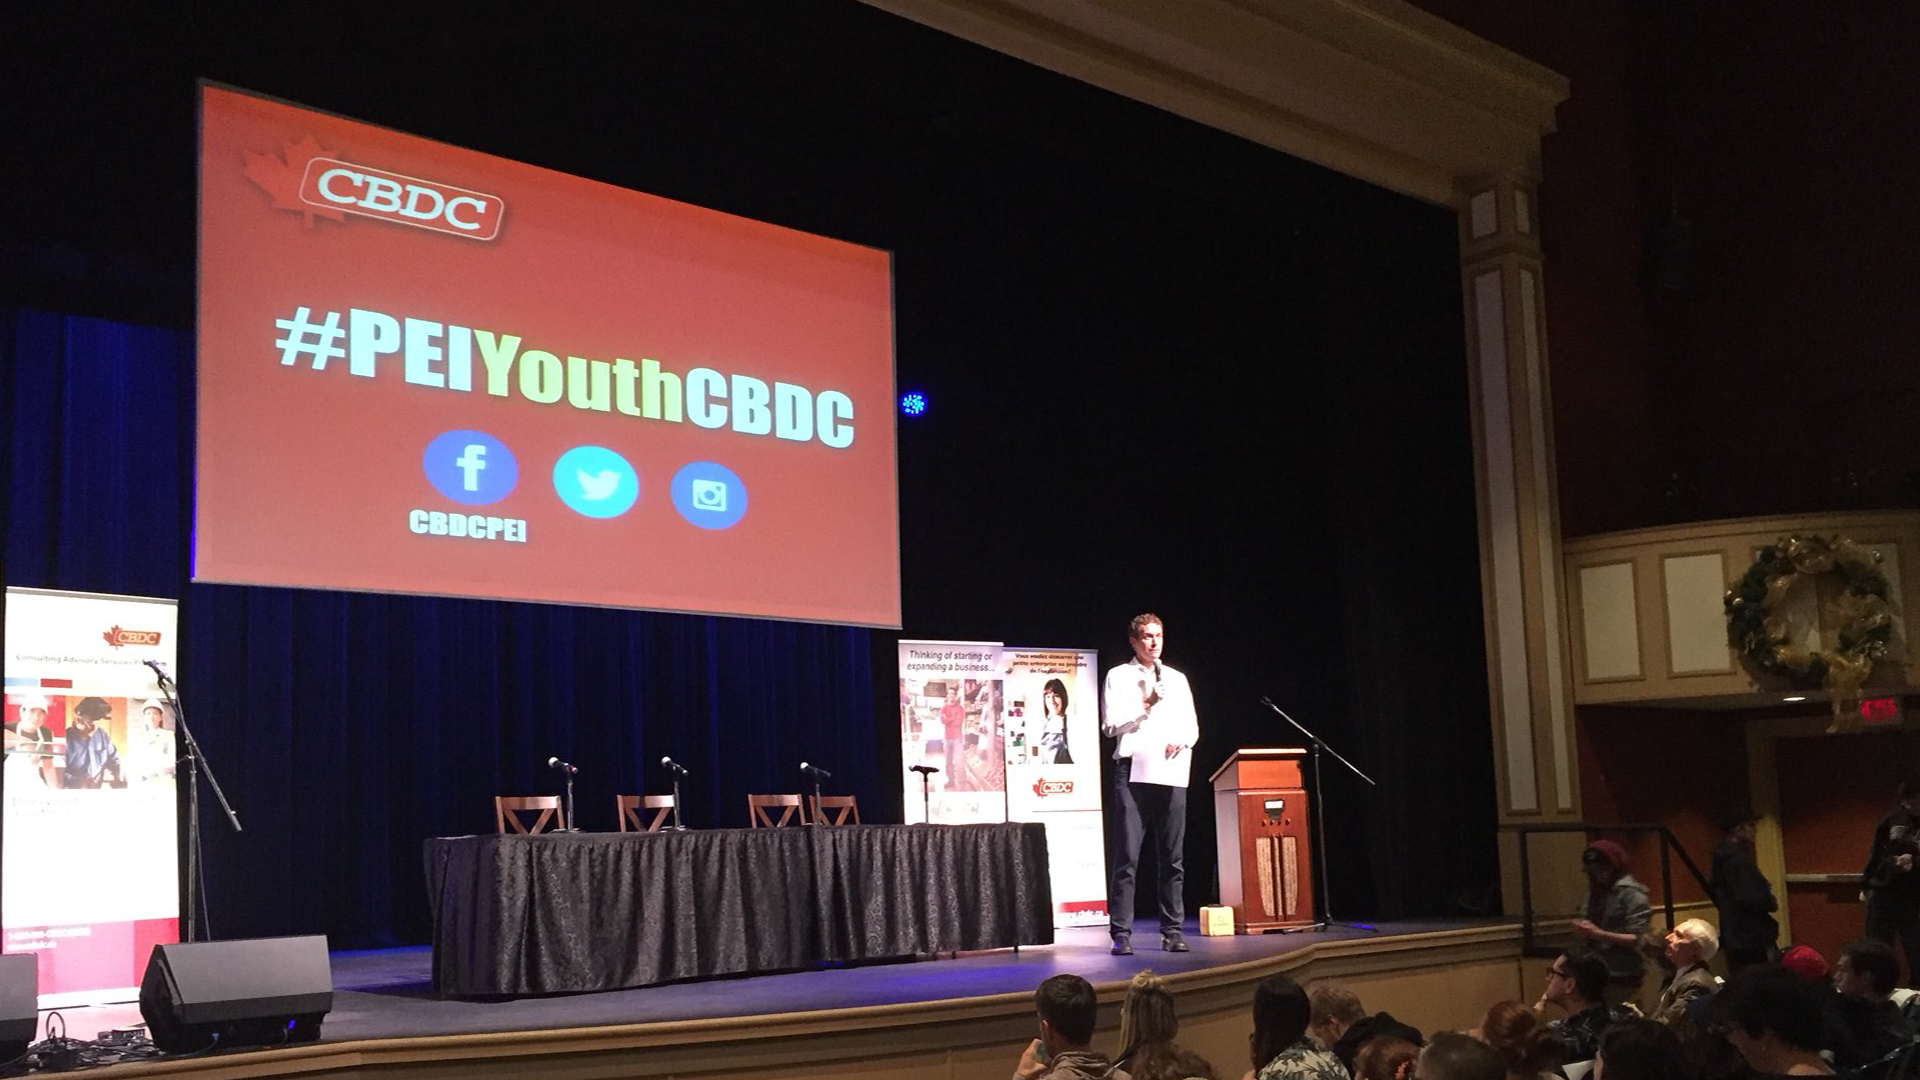 Hosting: 2016 Cdn. Business Dev. Corp. Youth event